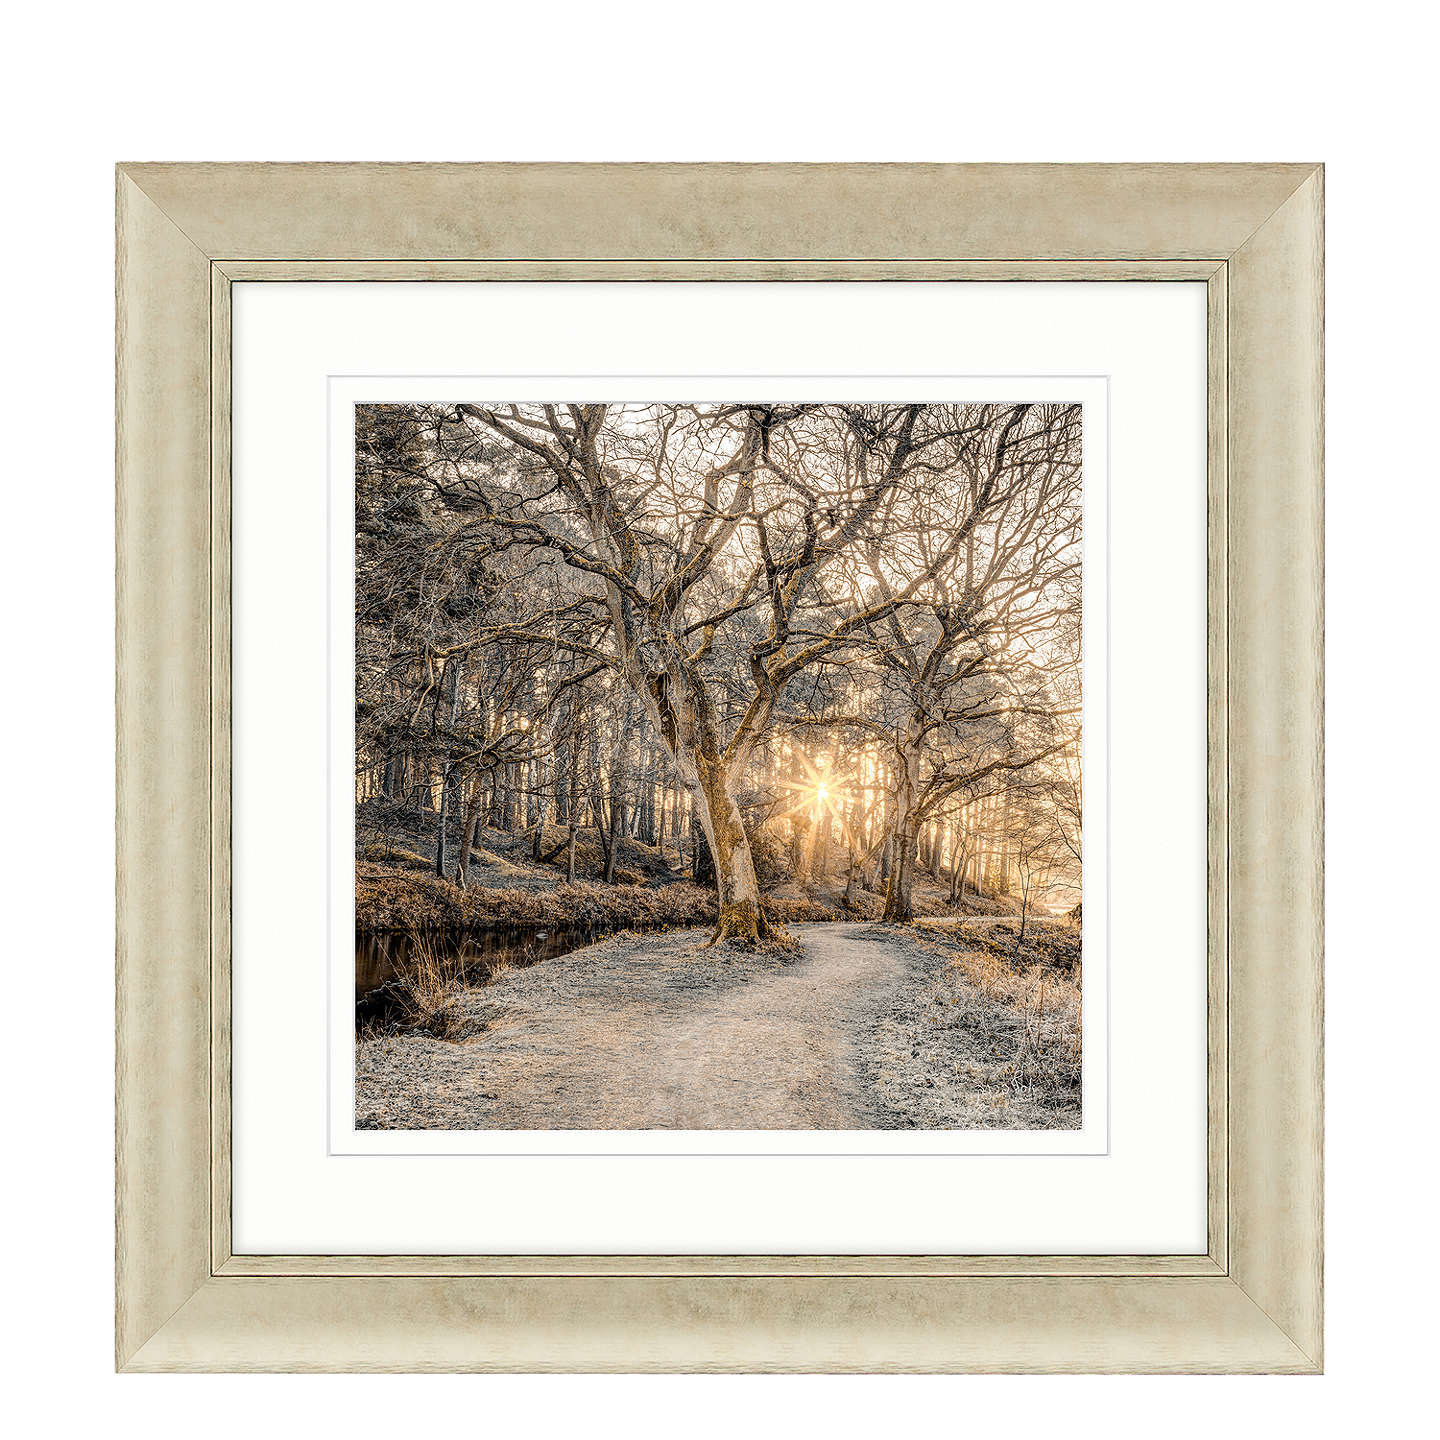 BuyAssaf Frank - Autumn Walk I Framed Print, 70 x 70cm Online at johnlewis.com